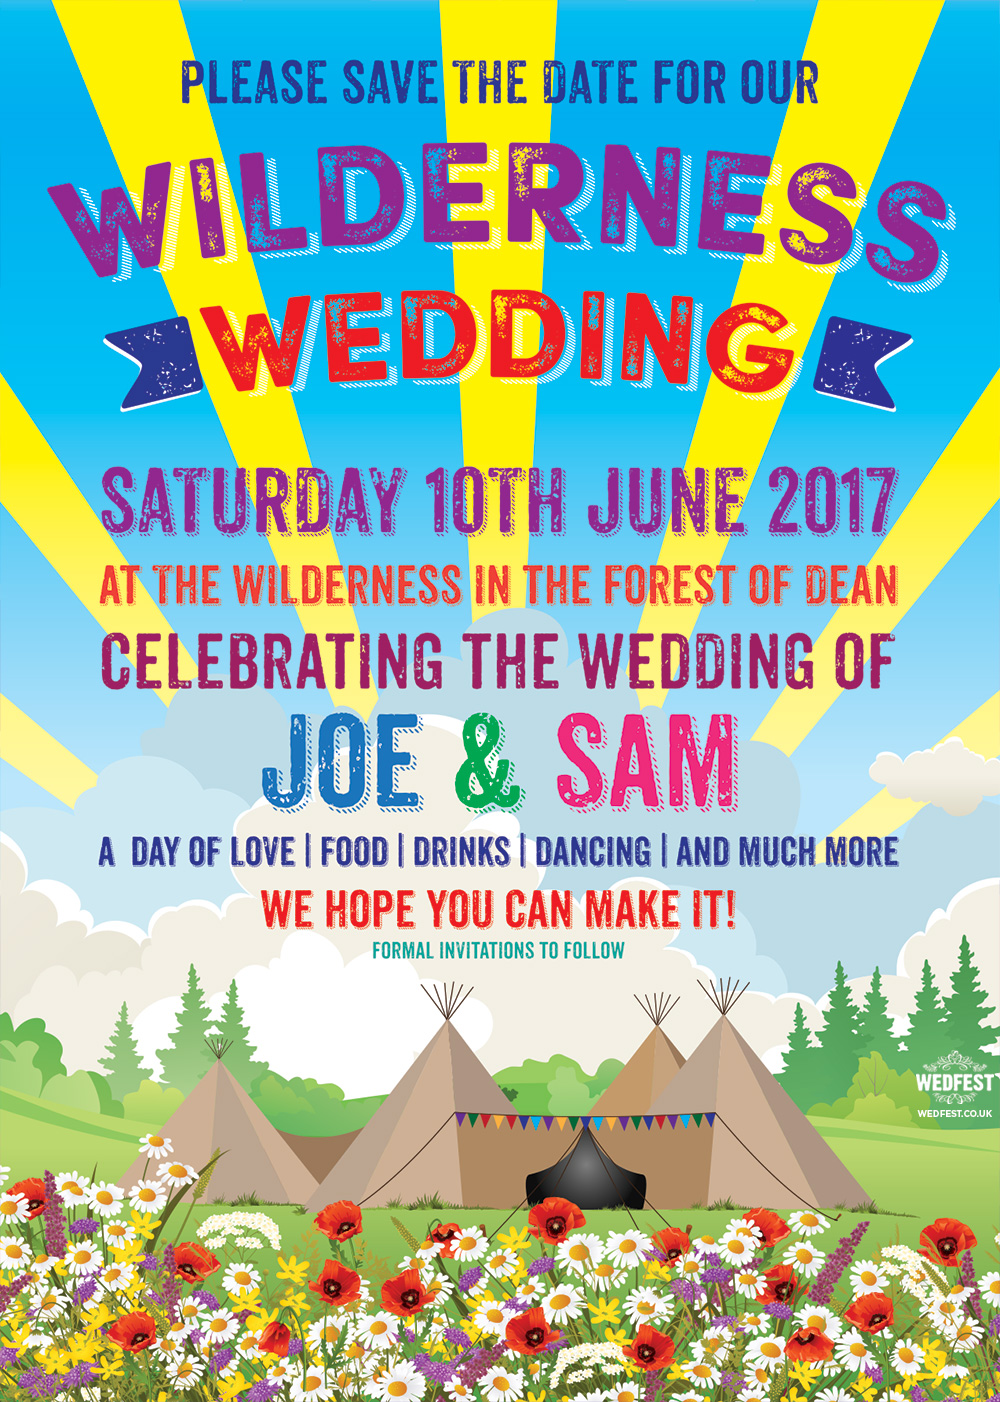 forest of dean wilderness wedding festival tipi save the date